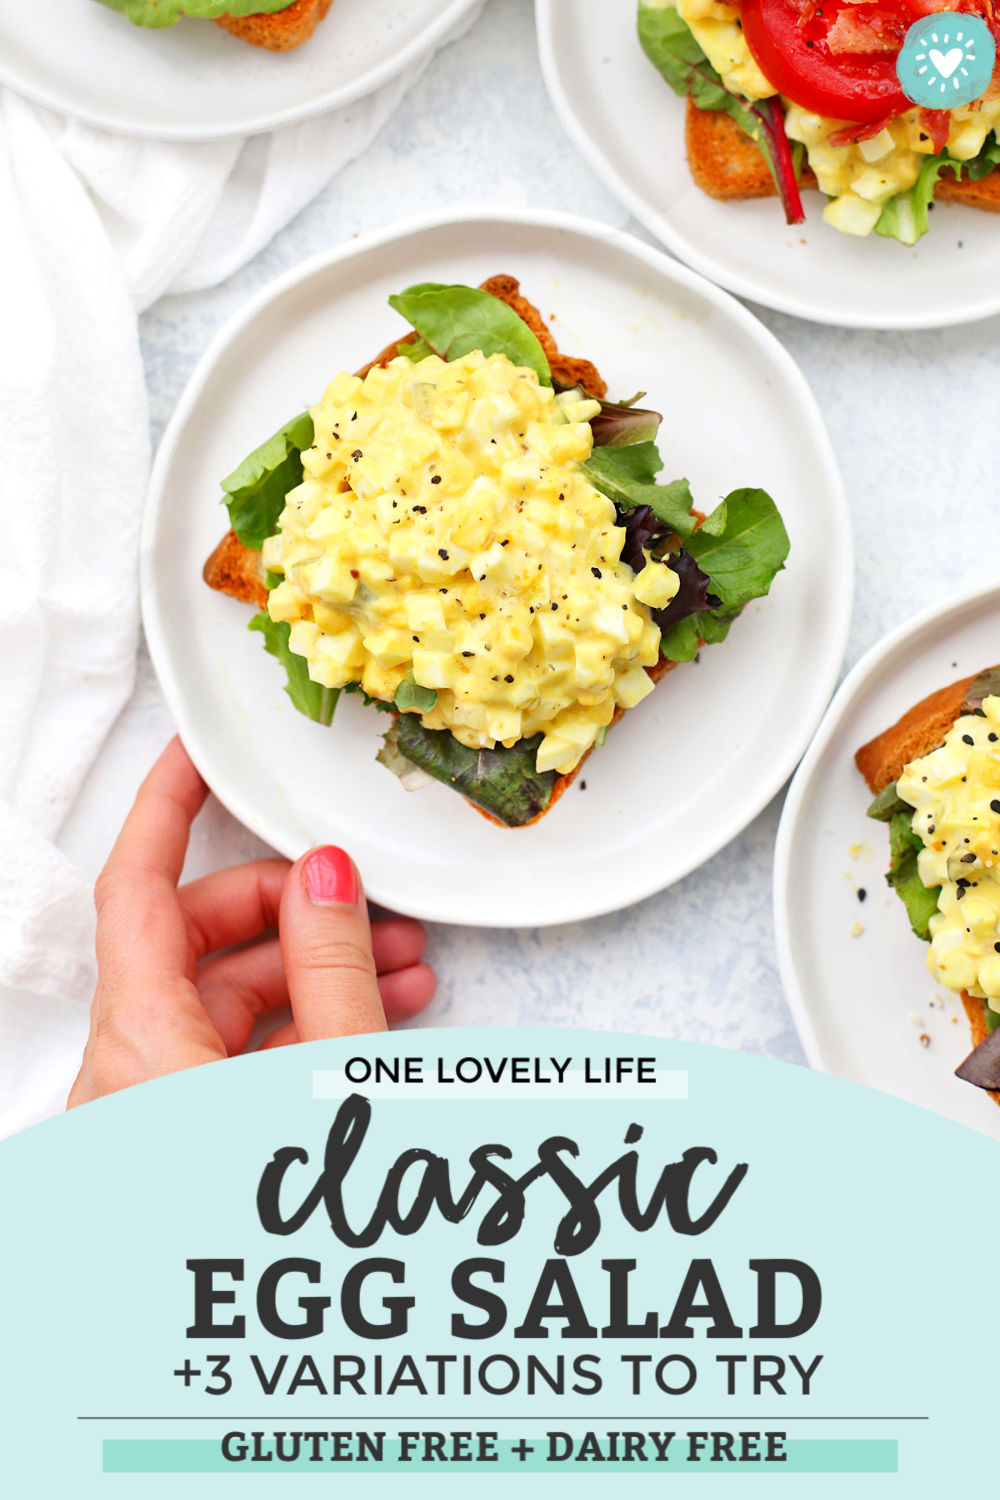 Classic Egg Salad from One Lovely Life